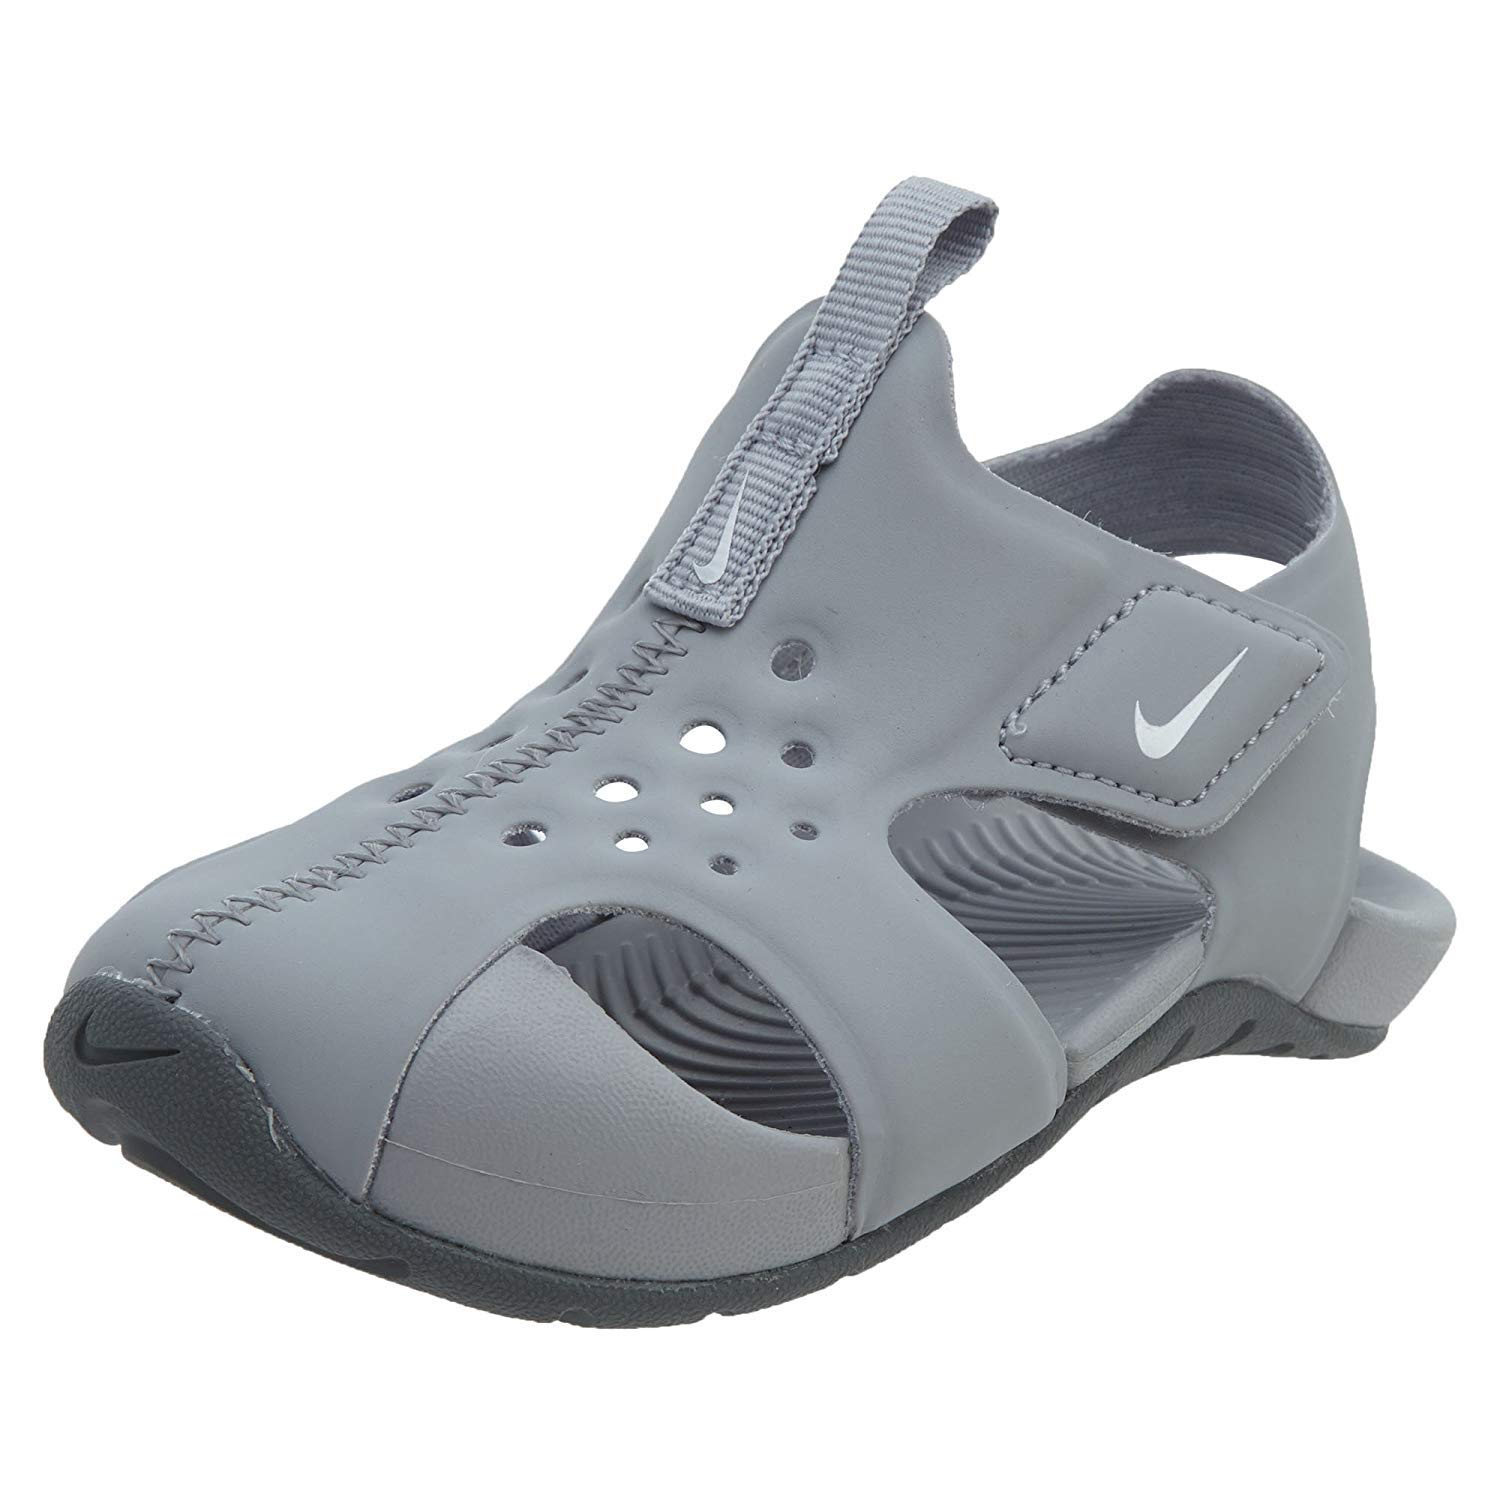 13 943826-300 Size Nike Sunray Protect 2 Little Kids Style